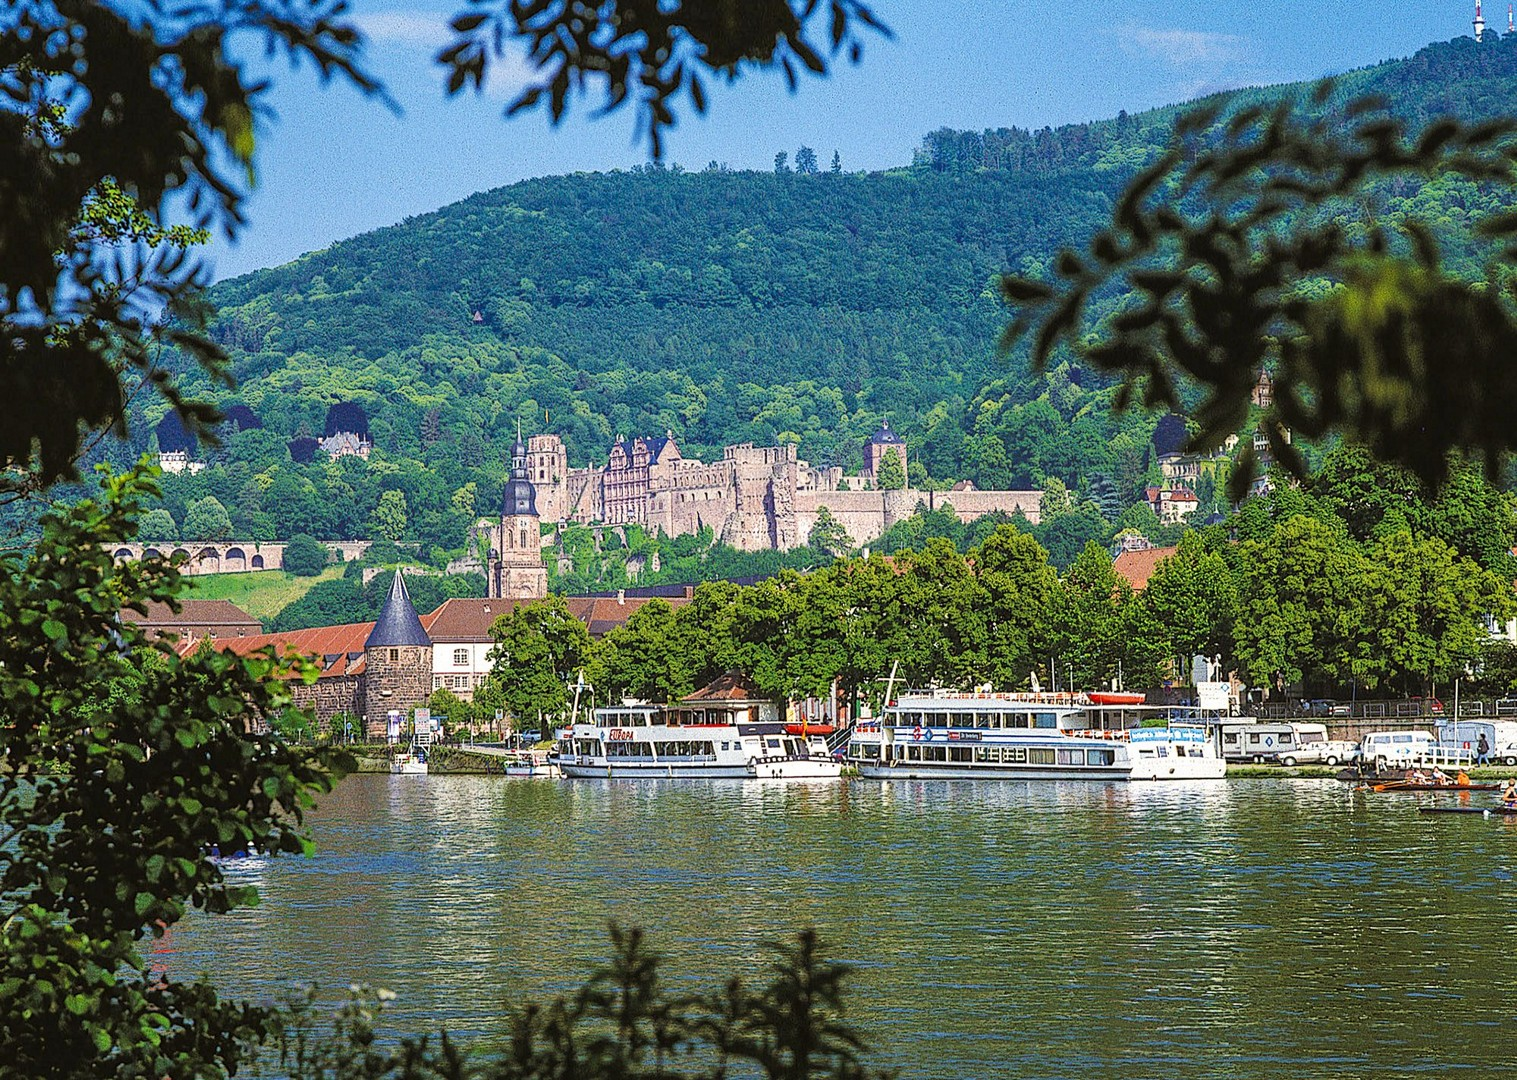 eb-rein-radweg-strassburg-mainz-heidelberg-1-16_28551949221_o-2.jpg - Germany and France - The Rhine Valley - Self-Guided Leisure Cycling Holiday - Leisure Cycling